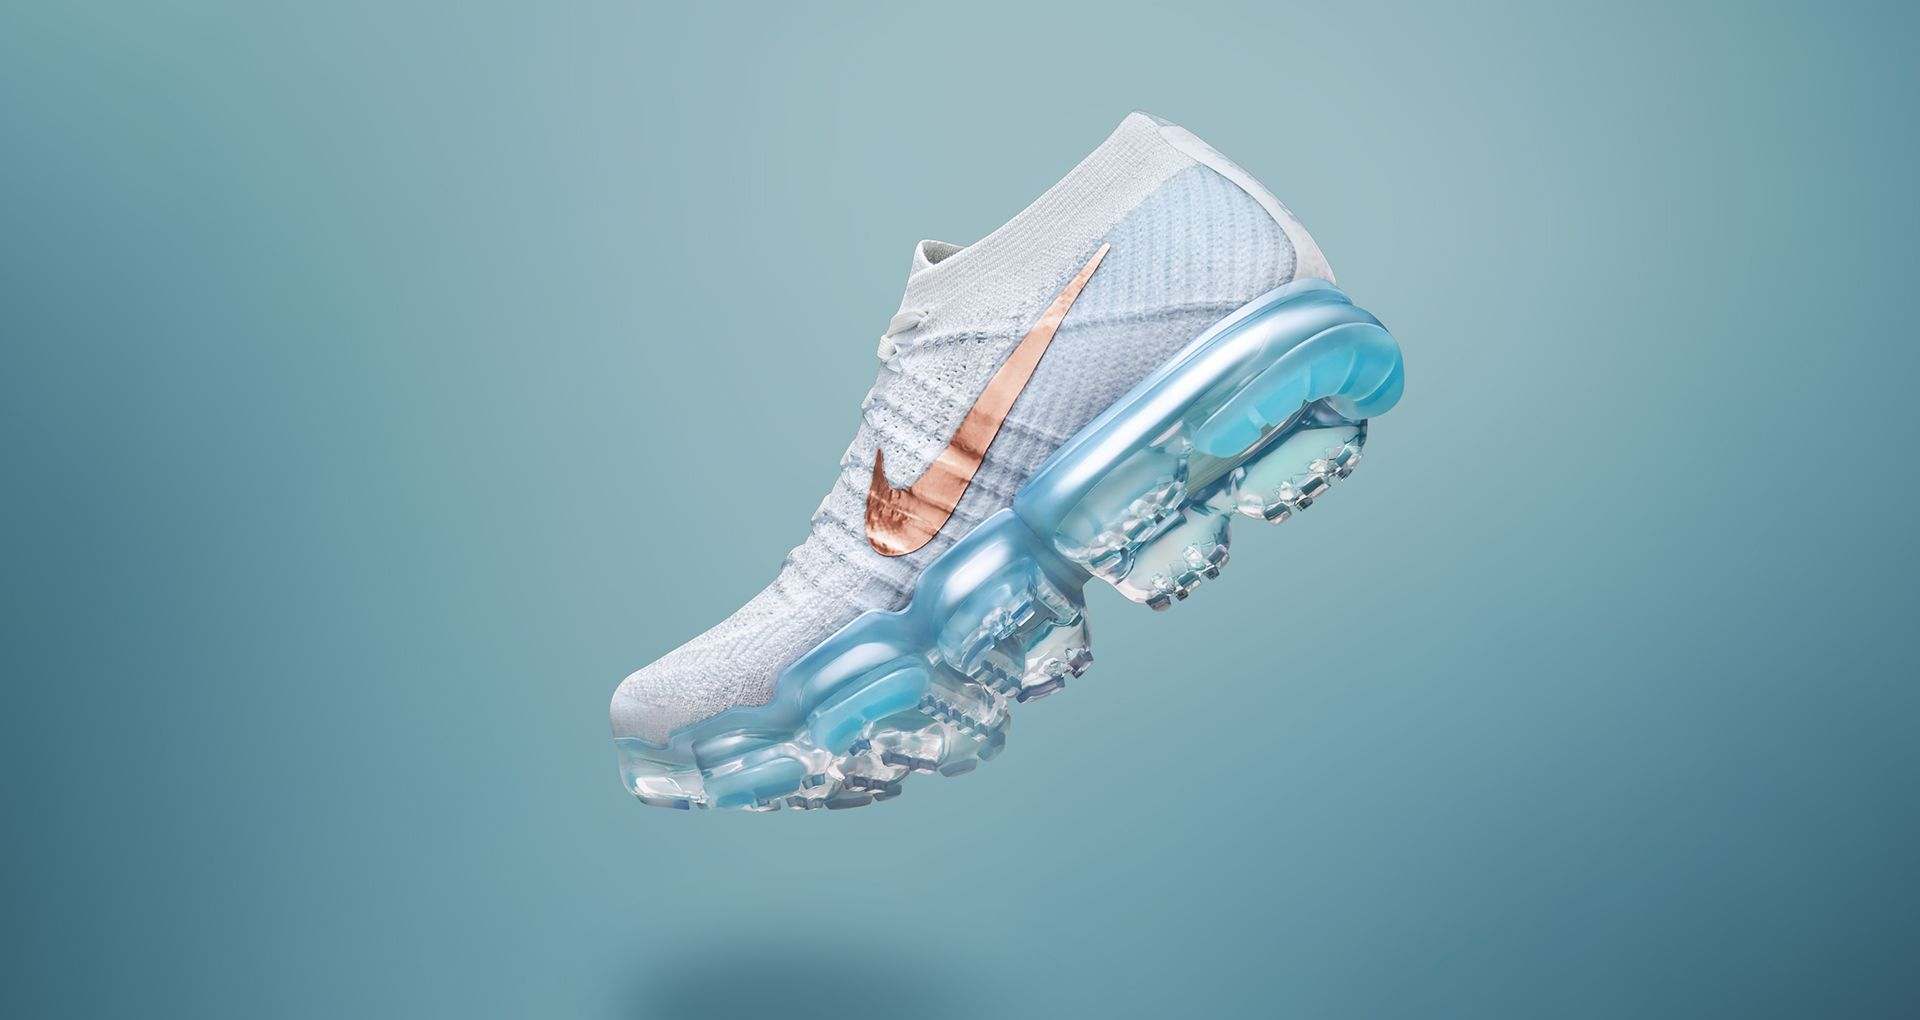 hot sale online e52a2 a01f6 Women's Nike Air VaporMax Flyknit 'Summit White & Hydrogen ...